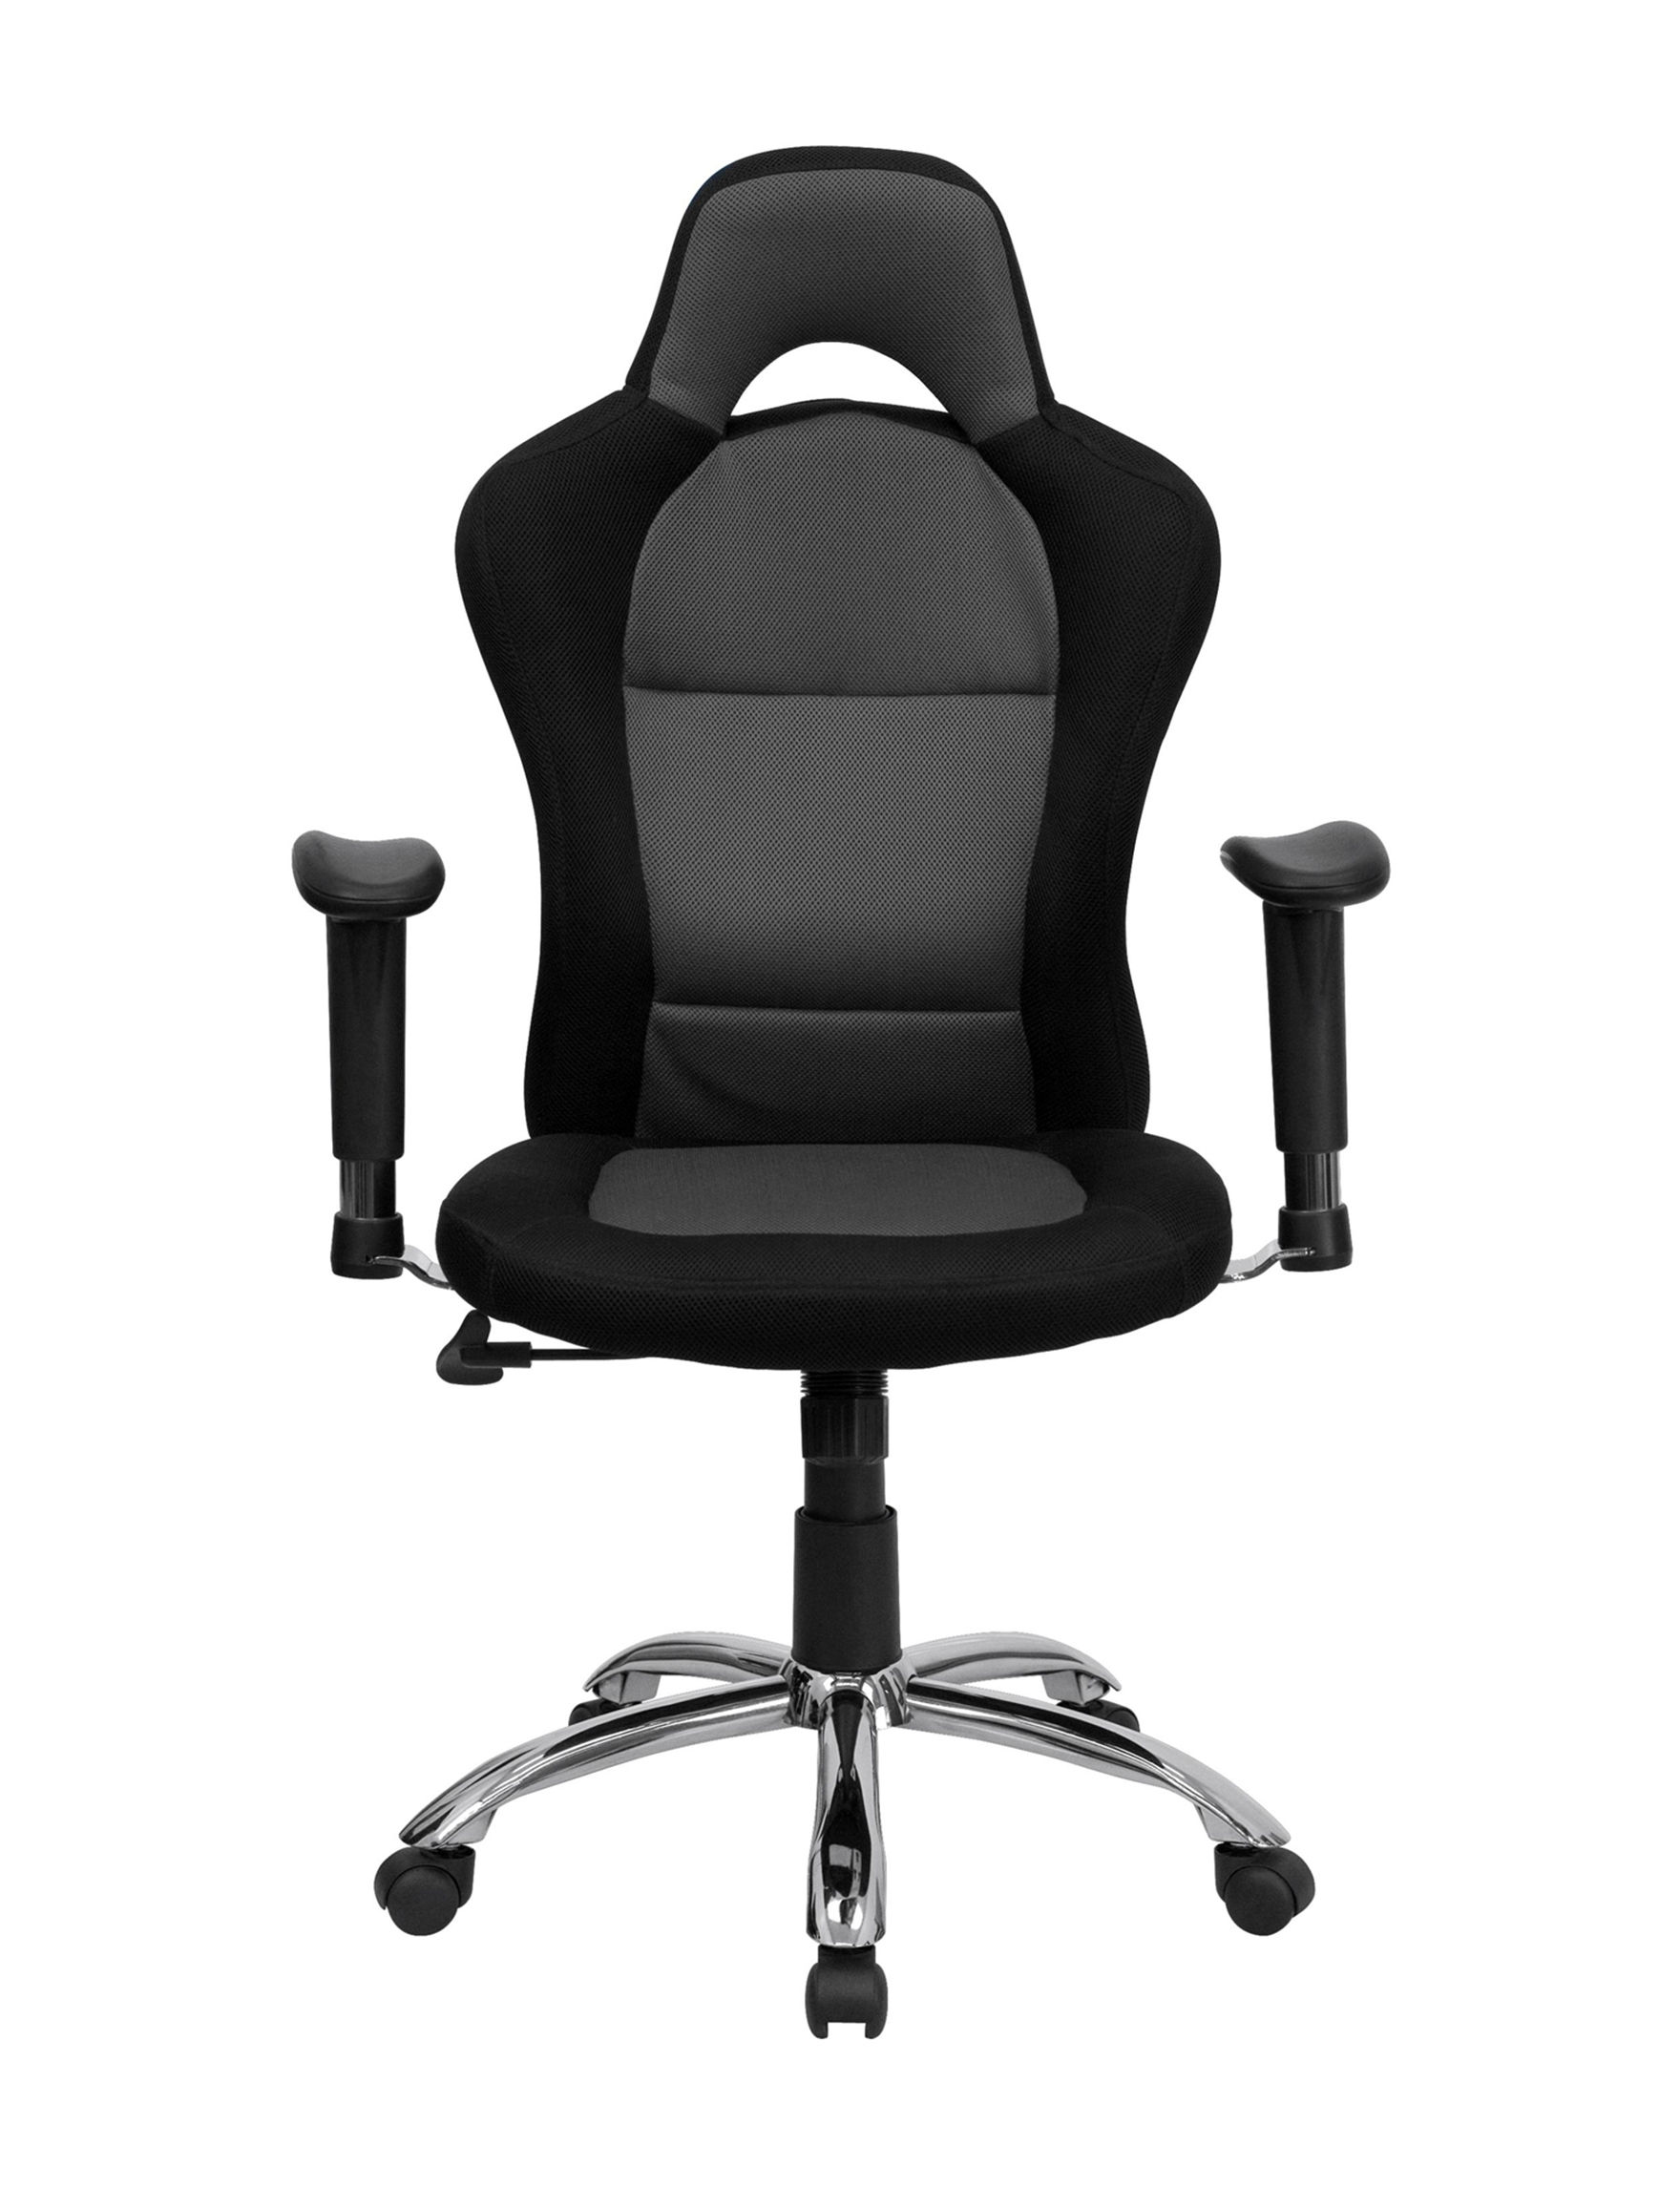 Flash Furniture Black / Grey Desk Chairs Office Chairs Home Office Furniture